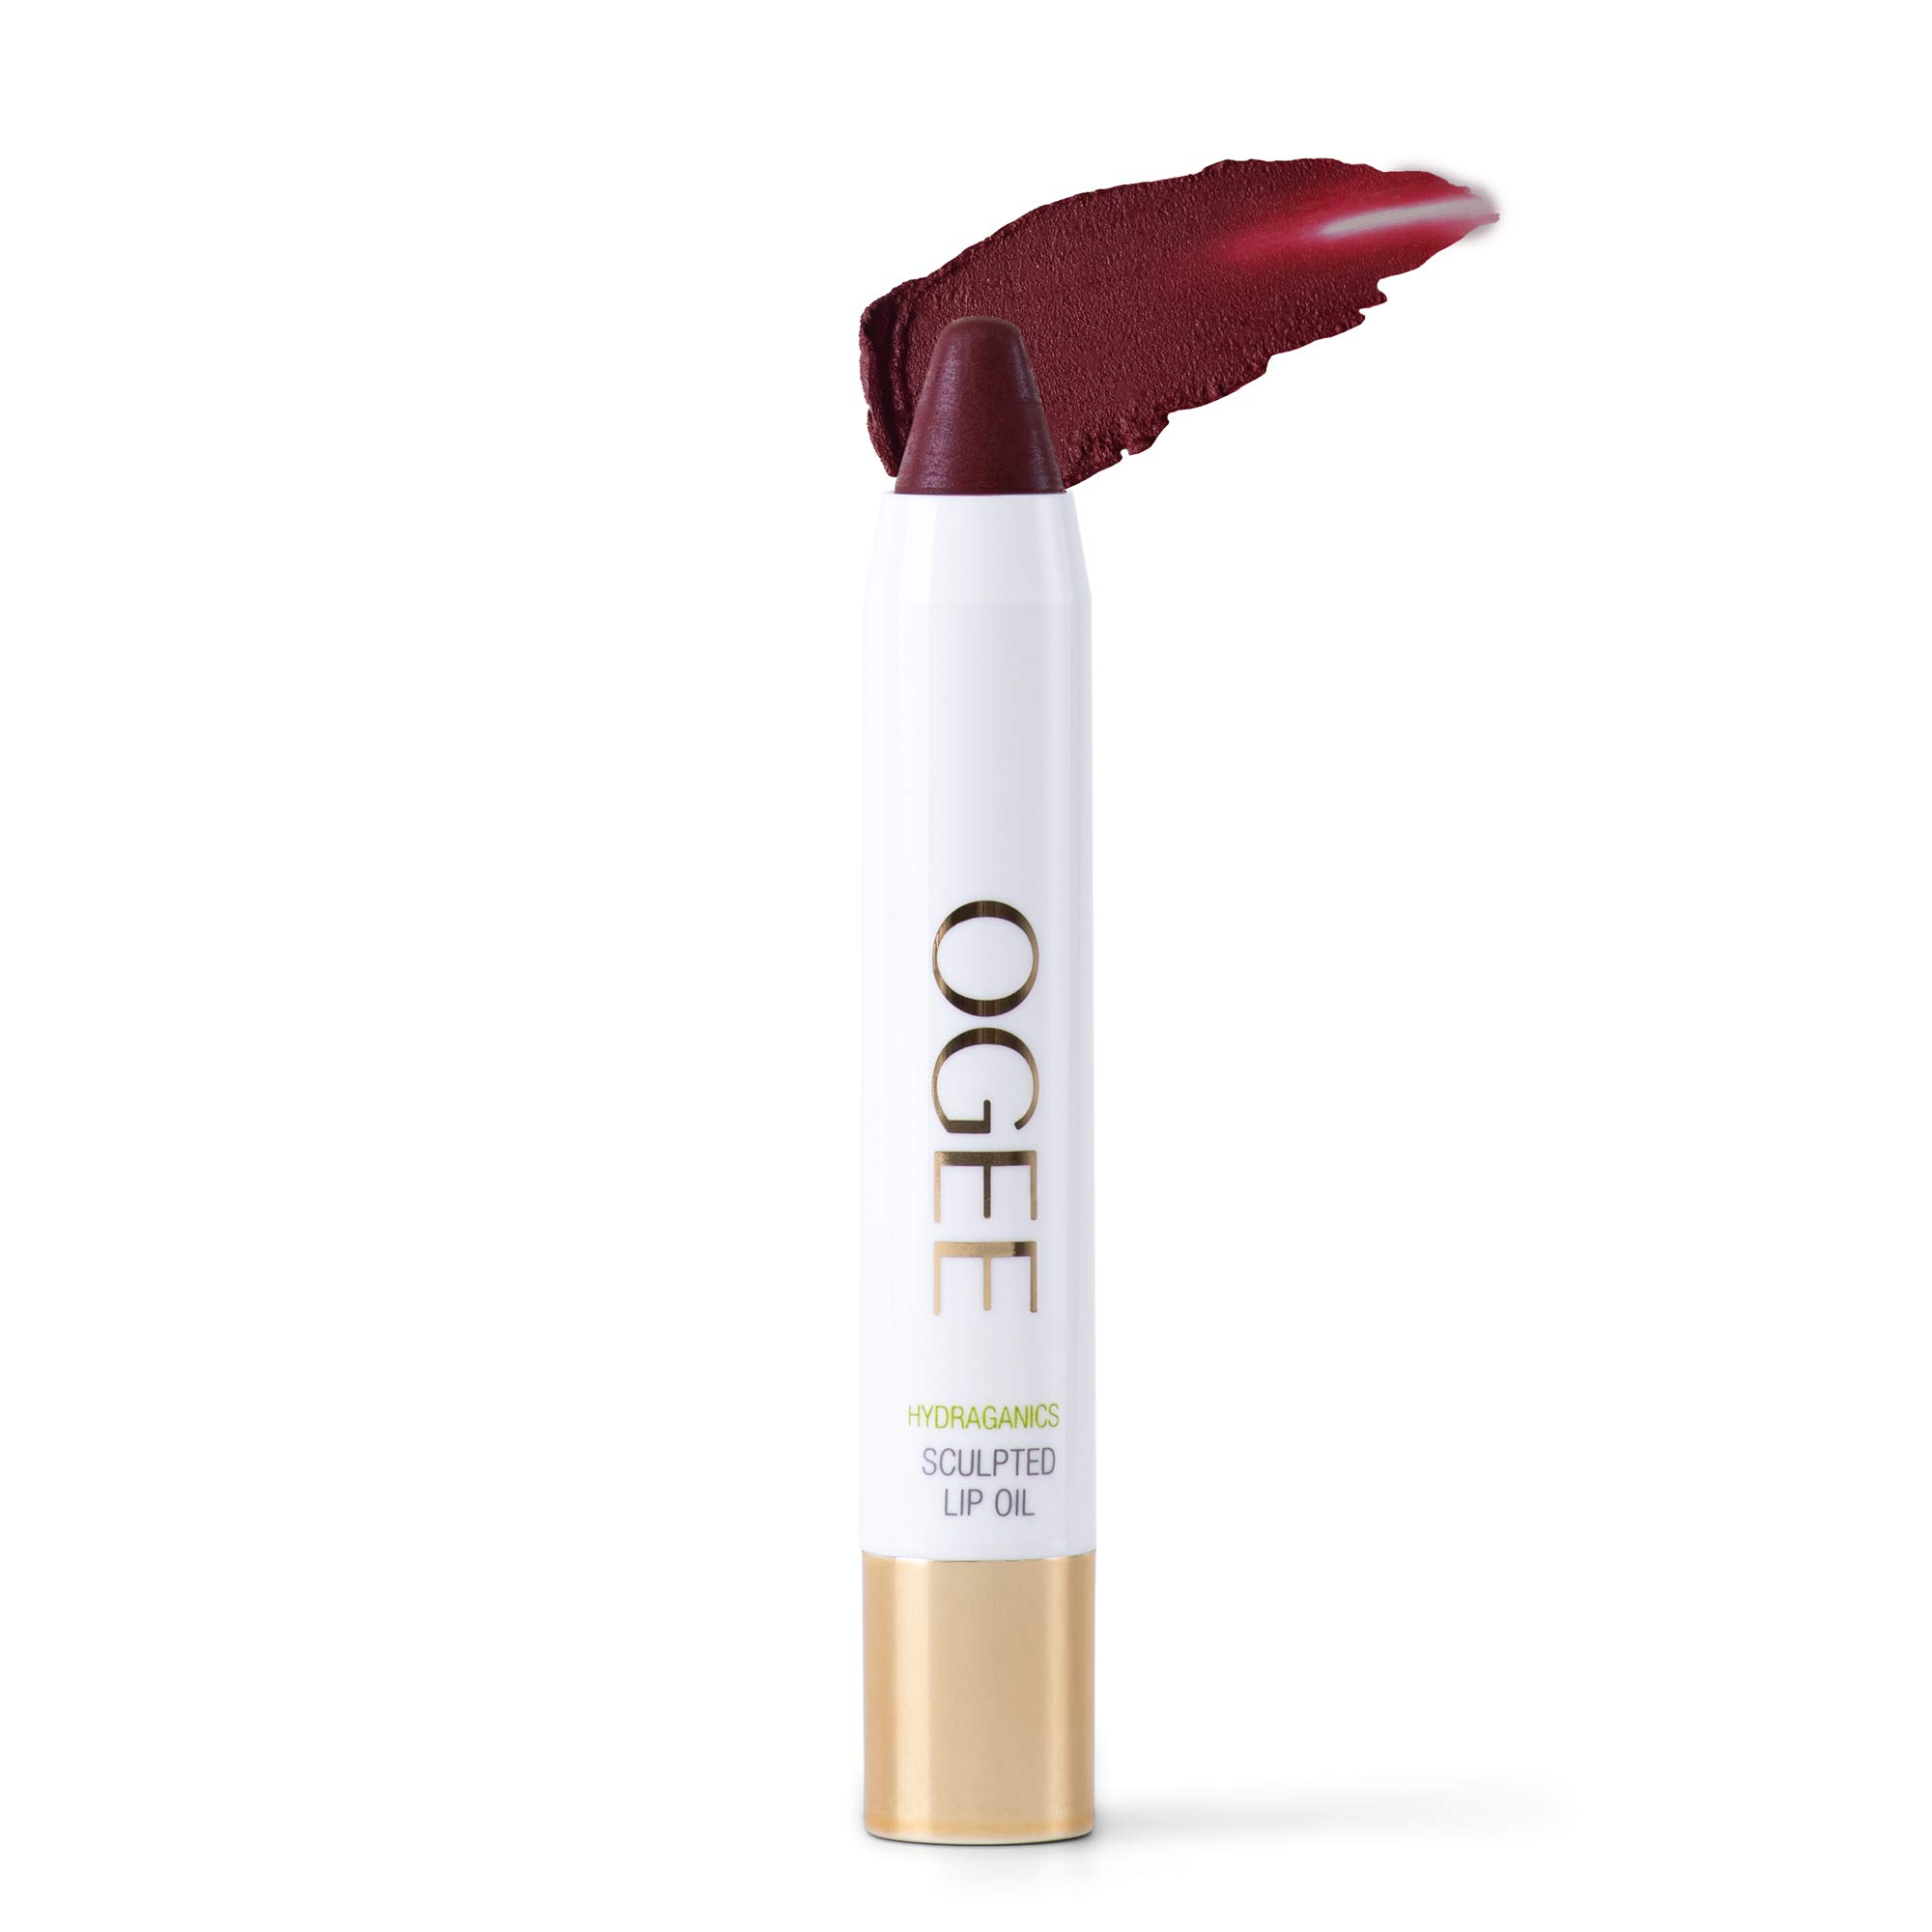 Ogee Tinted Sculpted Lip Oil - Made with 100% Organic Coconut Oil, Jojoba Oil, and Vitamin E - Best as Lip Balm, Lip Color or Lip Treatment - Dahlia